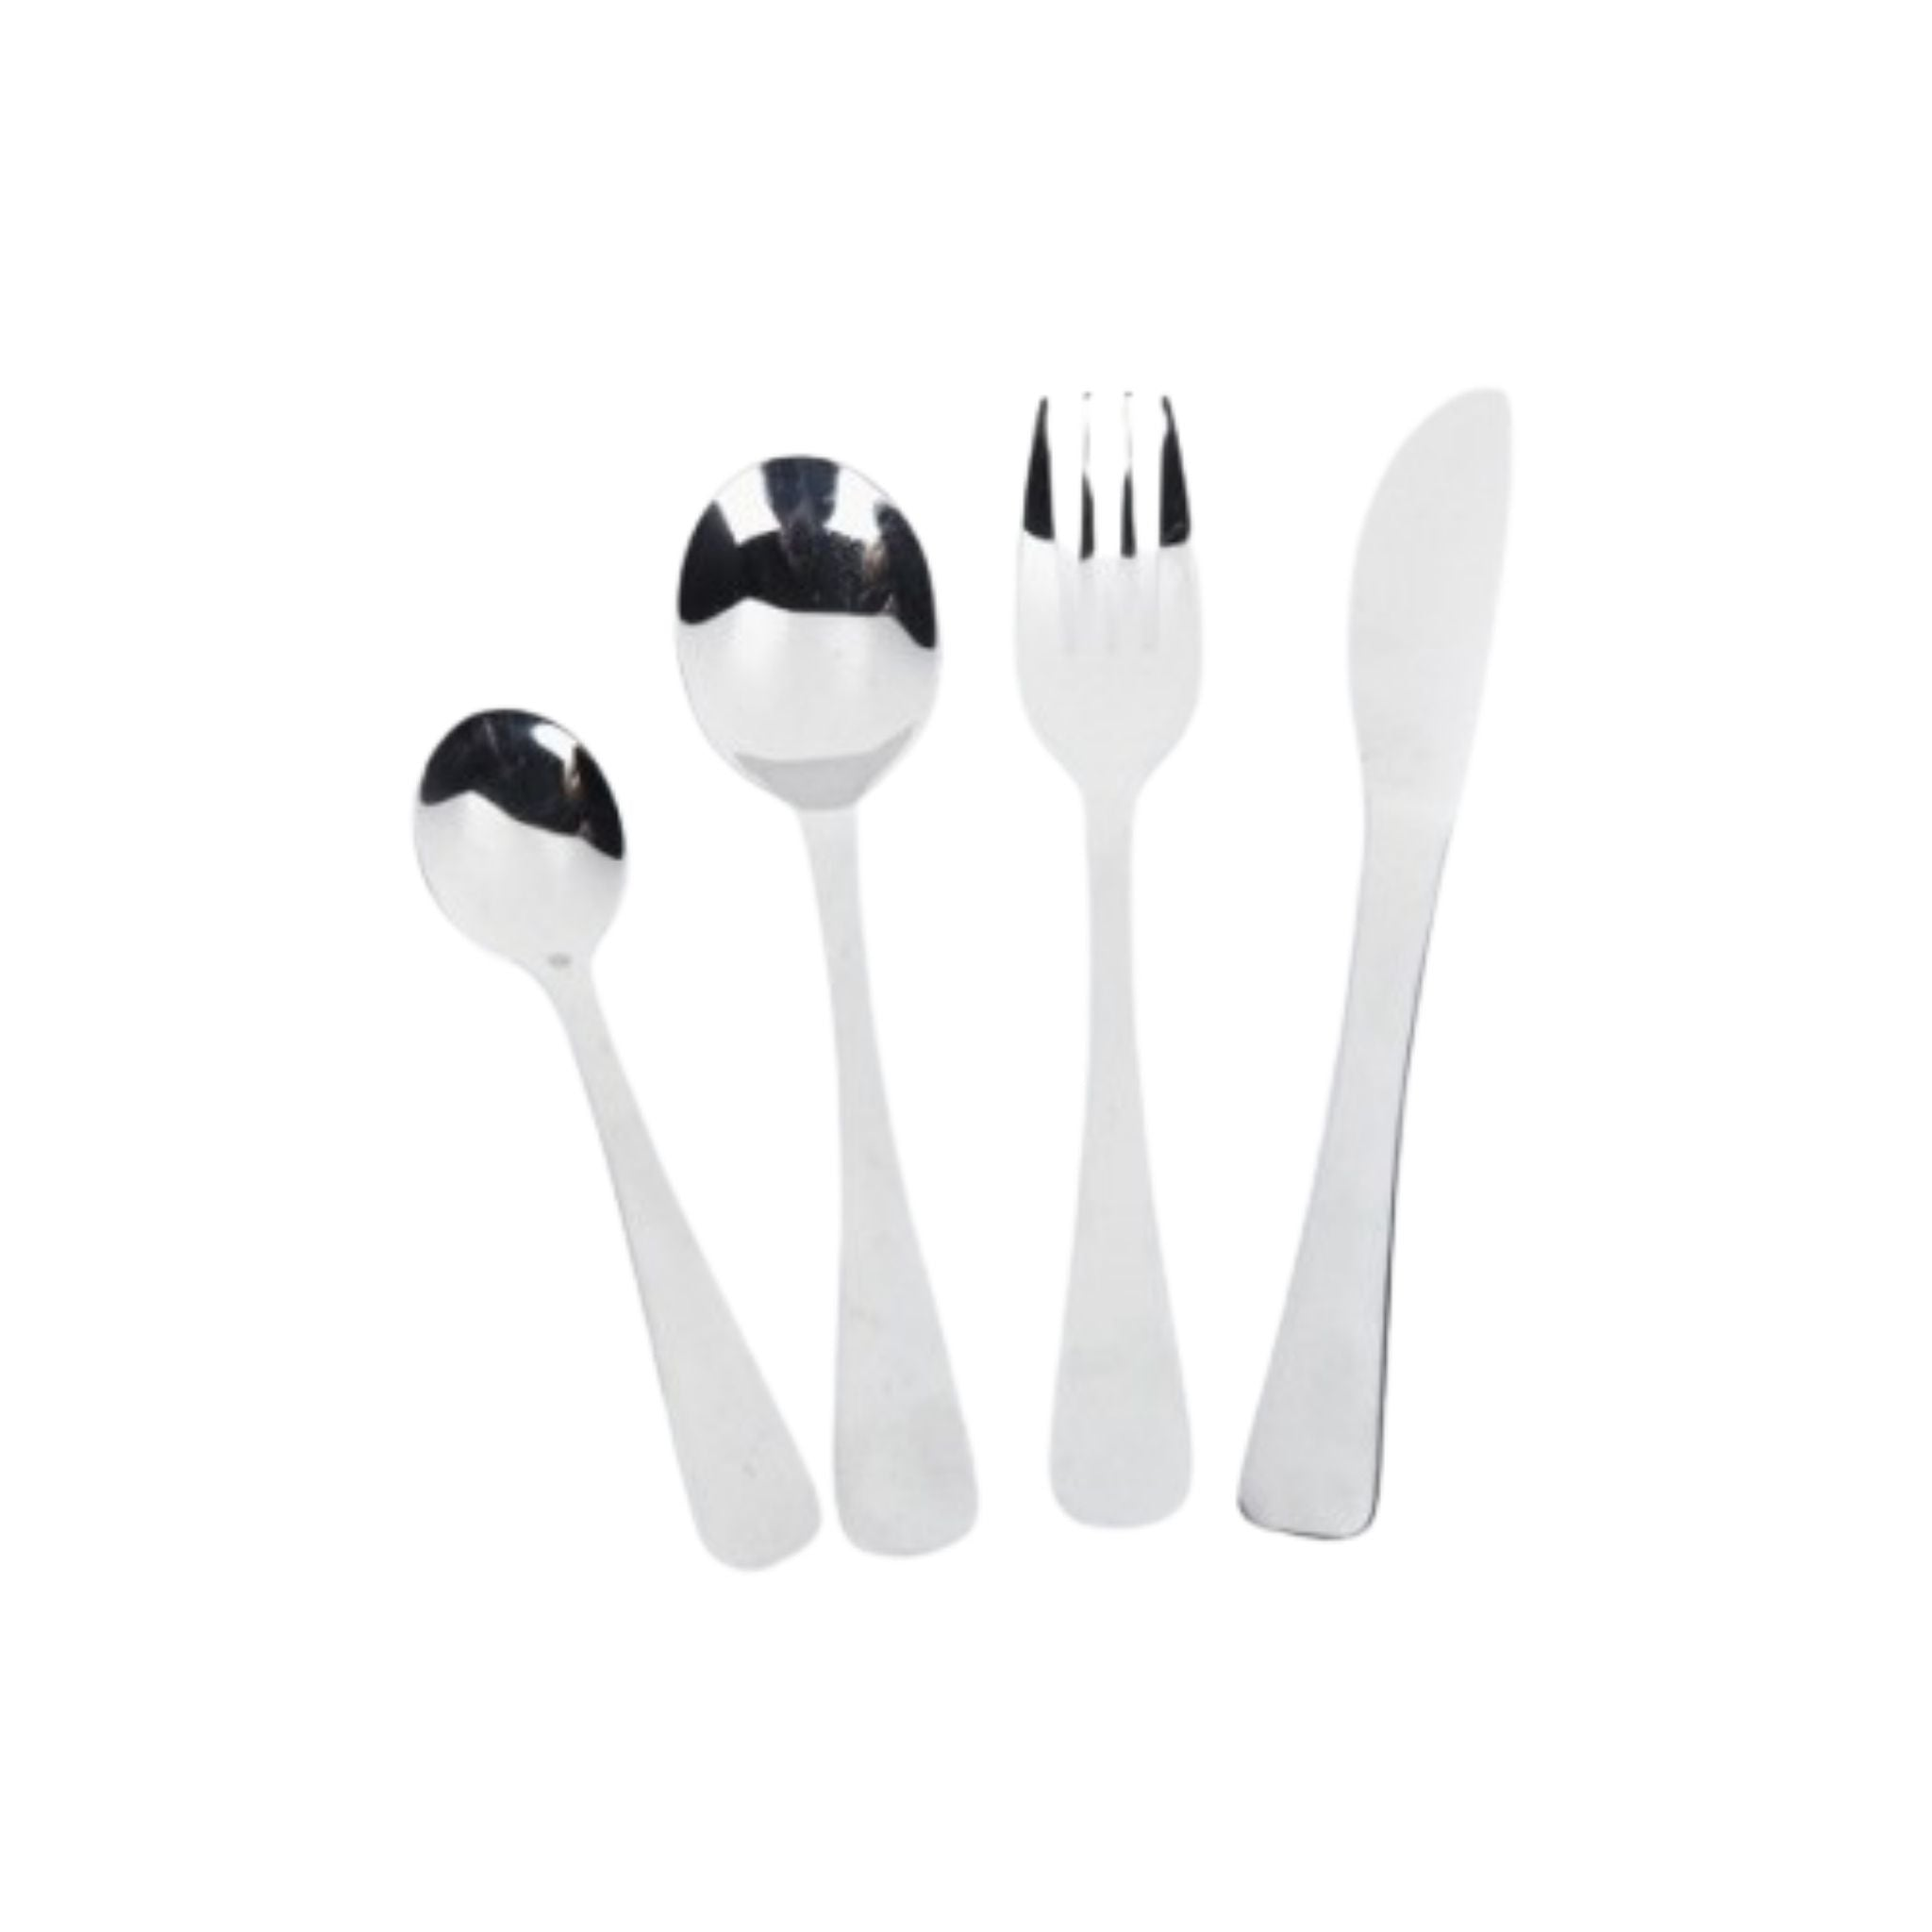 onyx cutlery plain from left to right, small spoon, large spoon, fork, knife